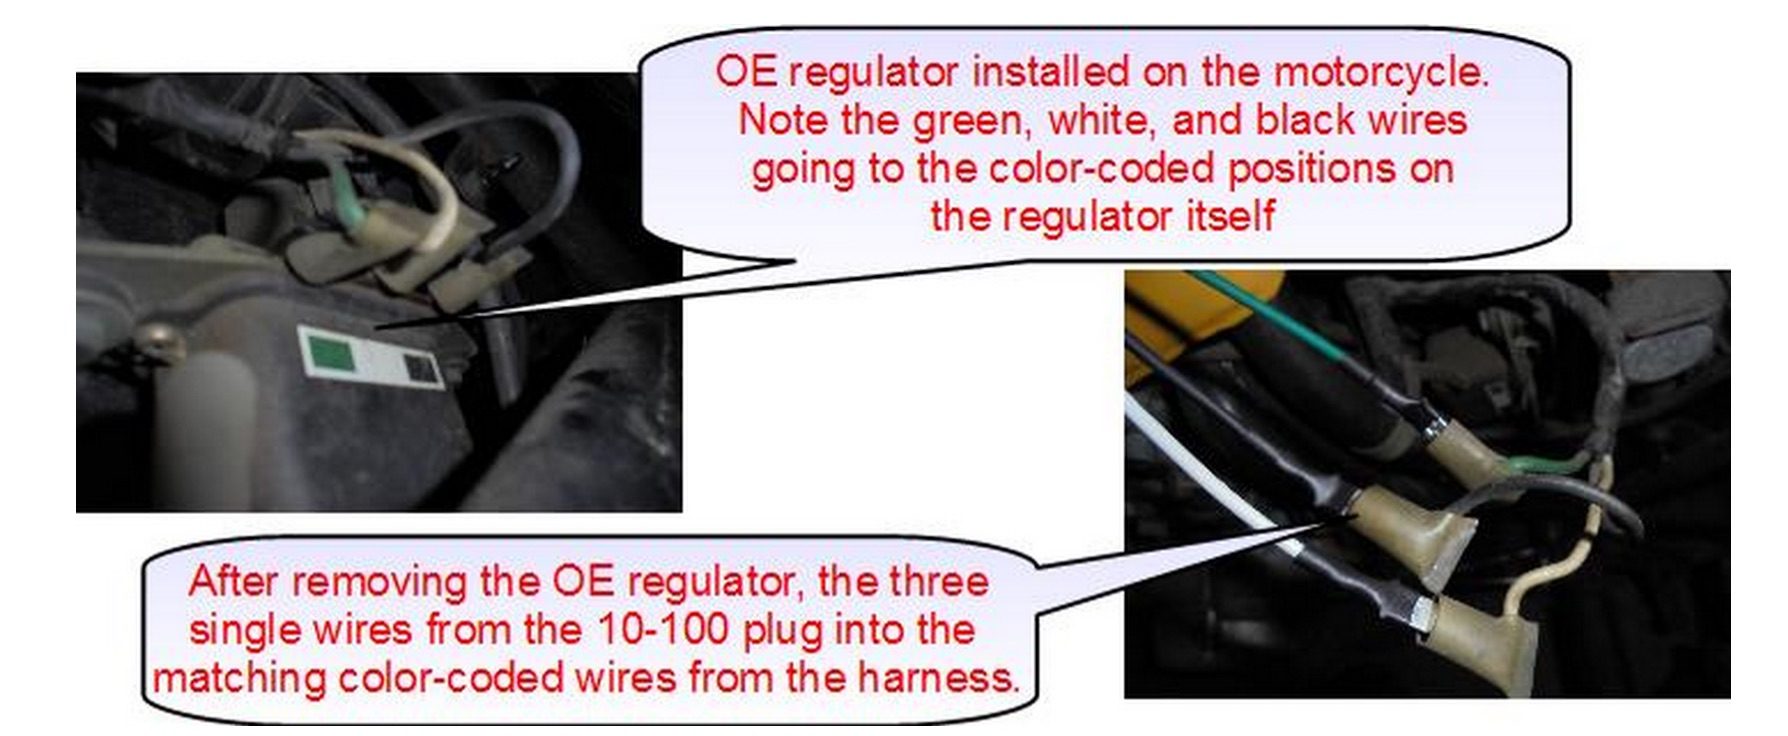 Aftermarket Honda Regulator Rectifier Oem Style Replacement Part Element Dash Wiring Schematic Connecting The Disconnect 6 Position 5 Wire Connector From Oe Plug Identical On 10 100 In Its Place